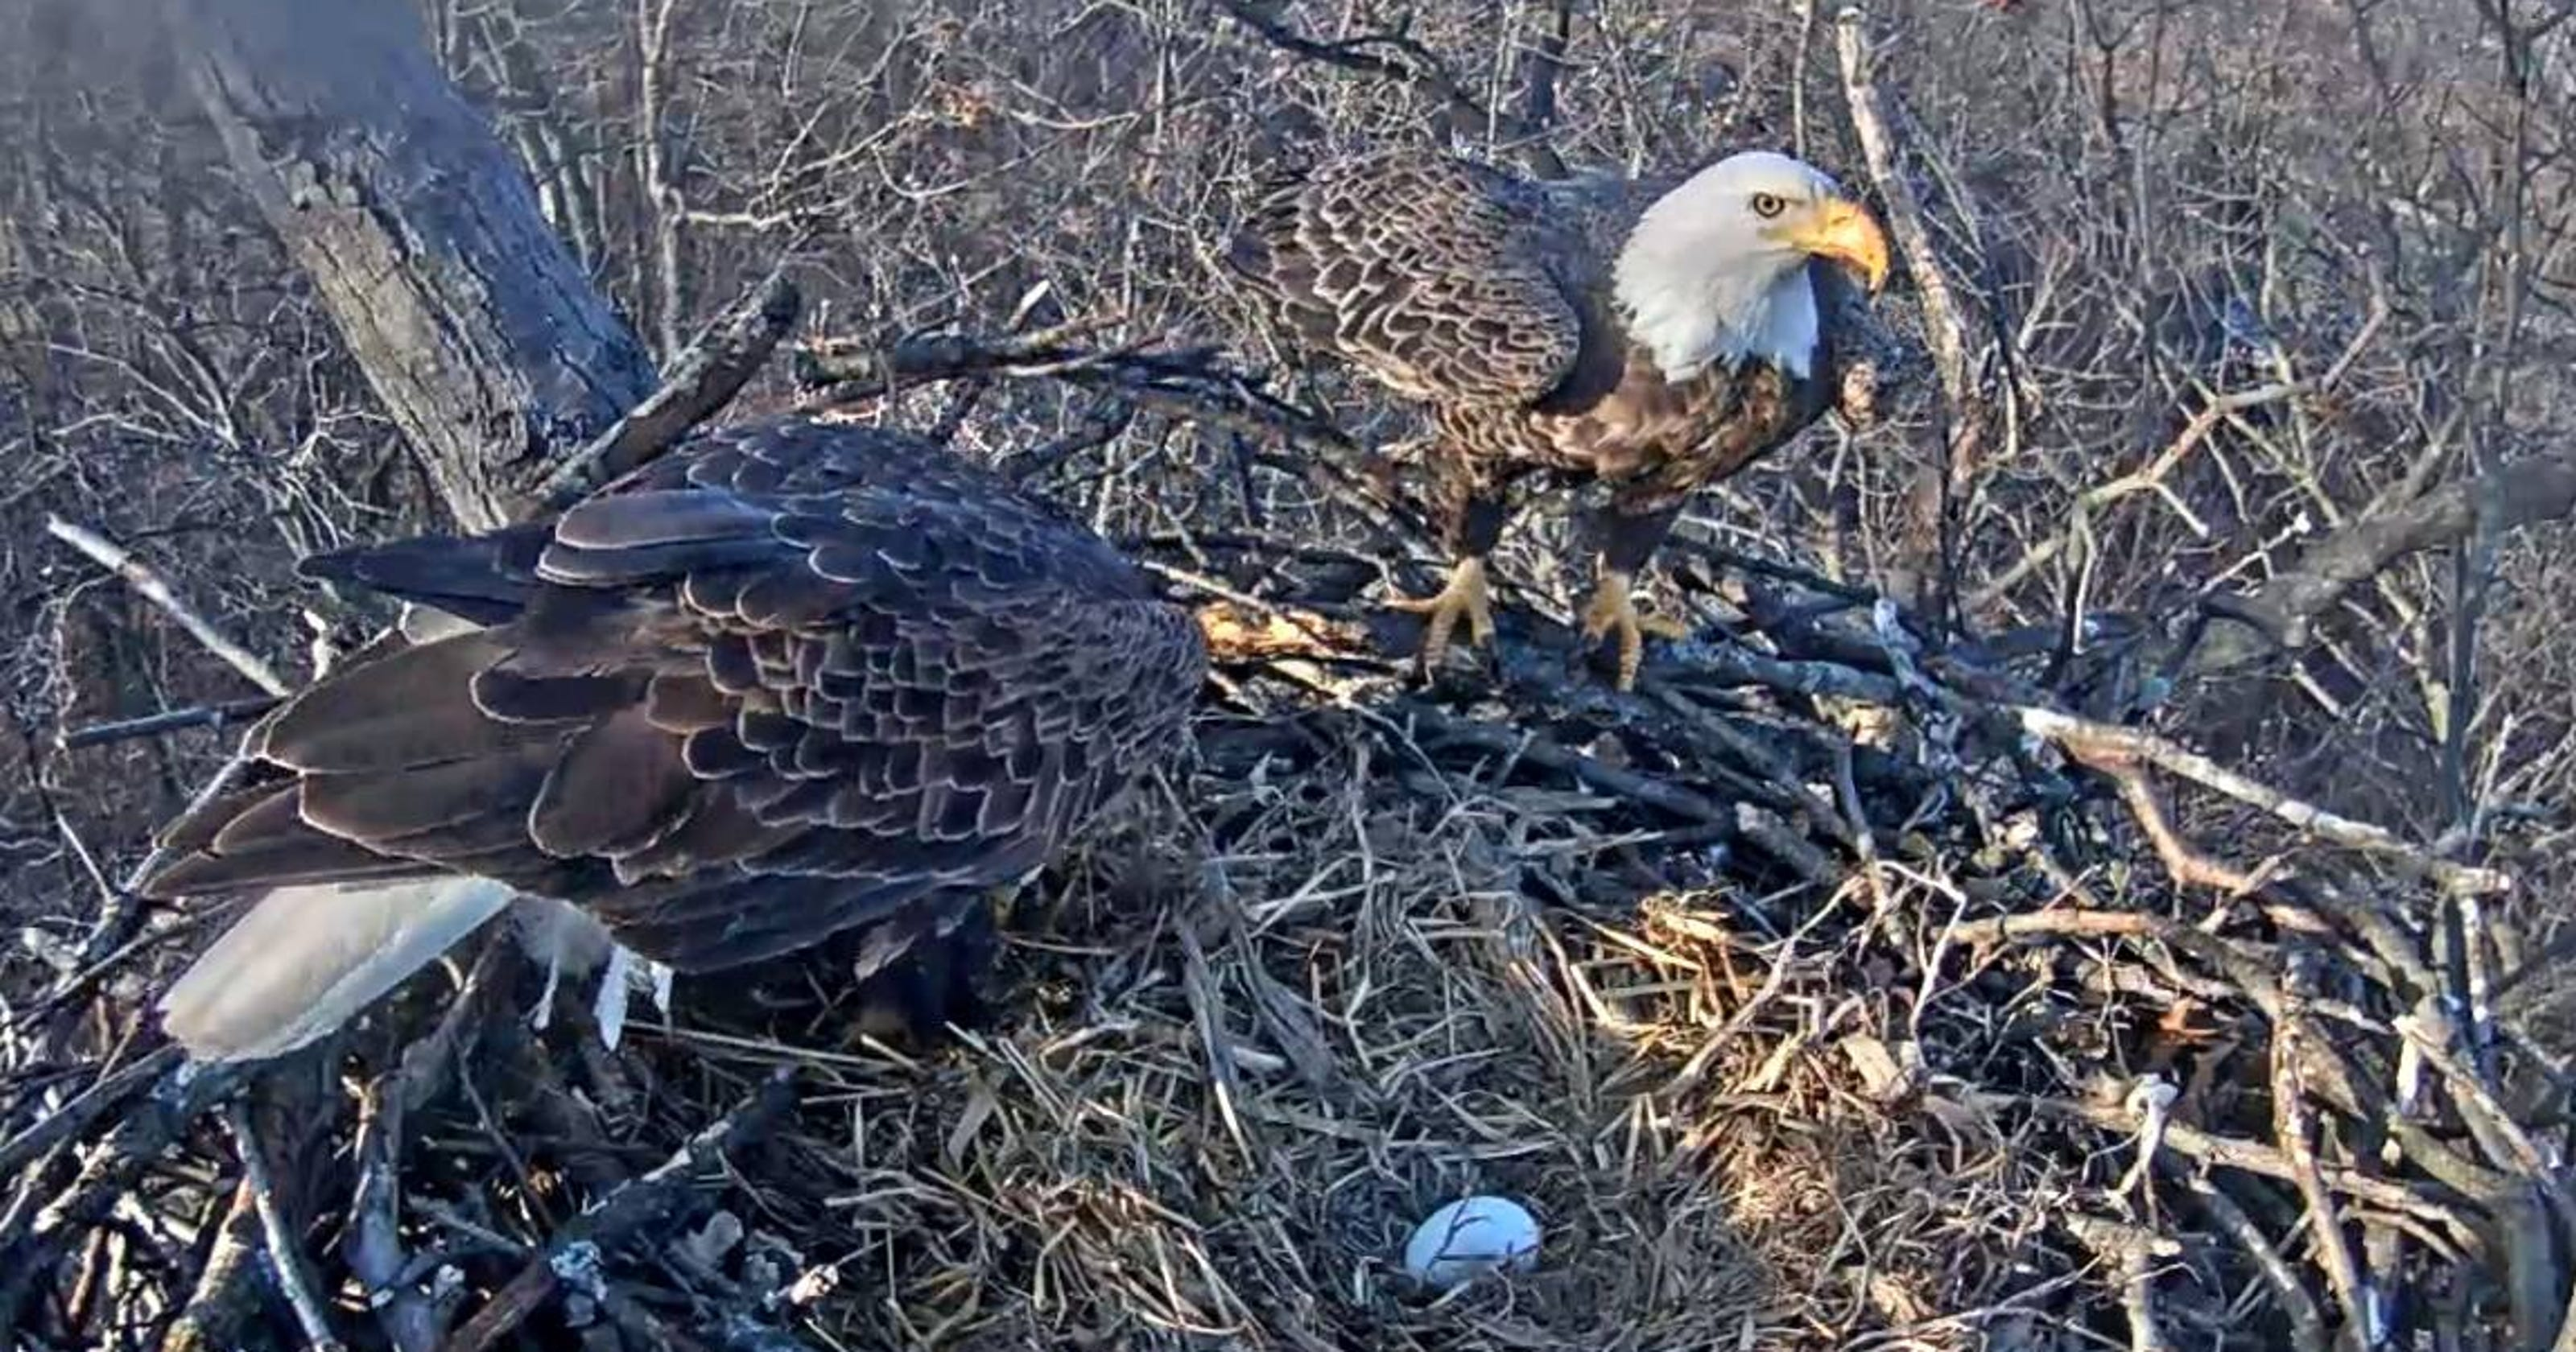 Pa  Game Commission drops Hanover eagle cam, others prepare